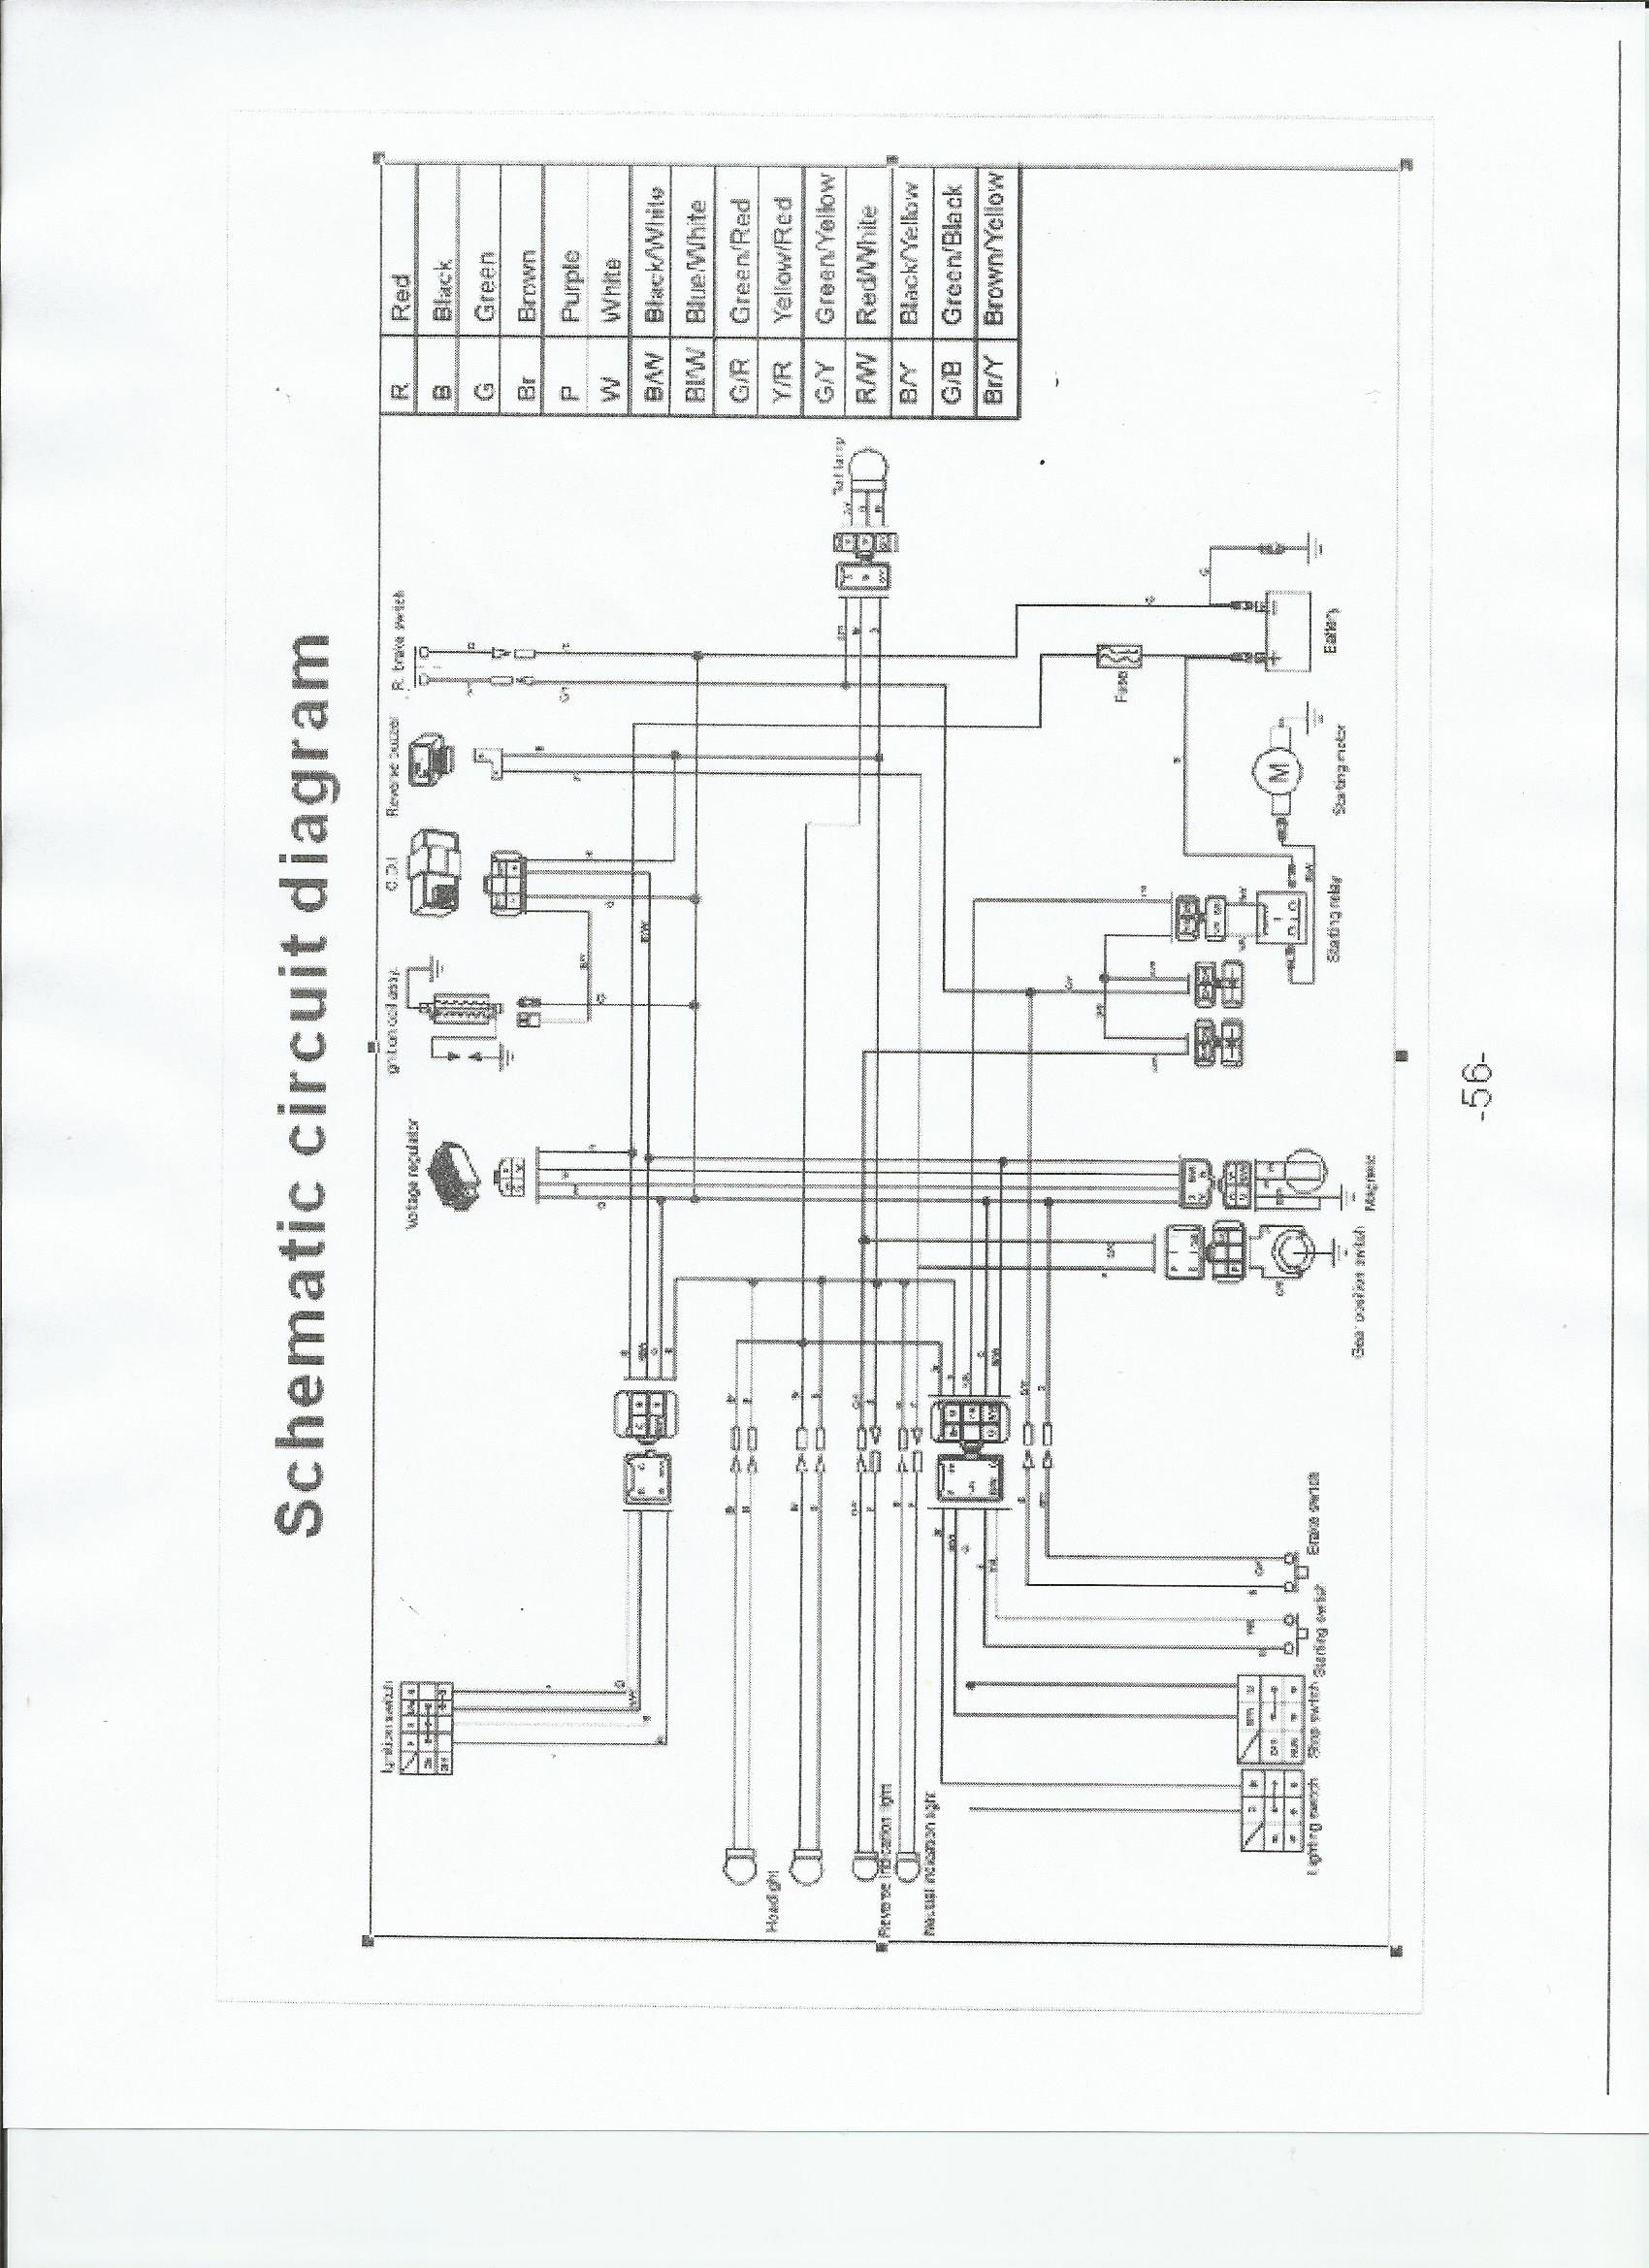 wiring diagram for 49cc mini chopper wiring image 49cc mini chopper wiring diagram 49cc auto wiring diagram schematic on wiring diagram for 49cc mini